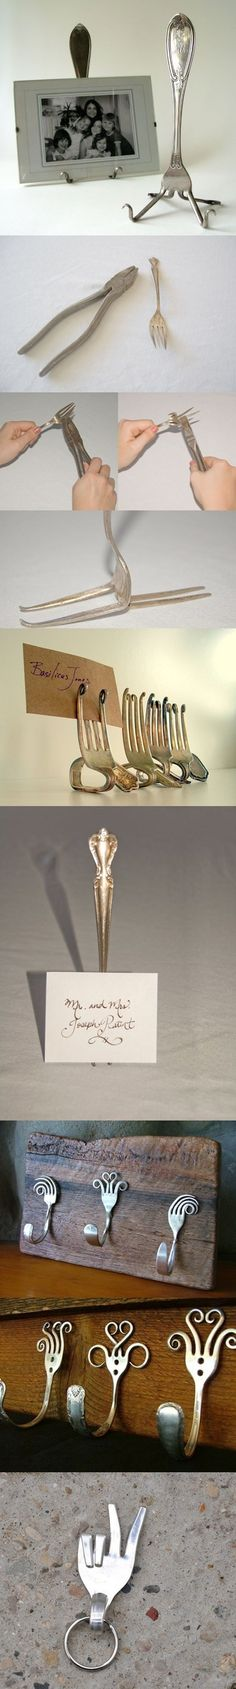 Up-cycled old forks-cool for hanging dish towels in the kitchen